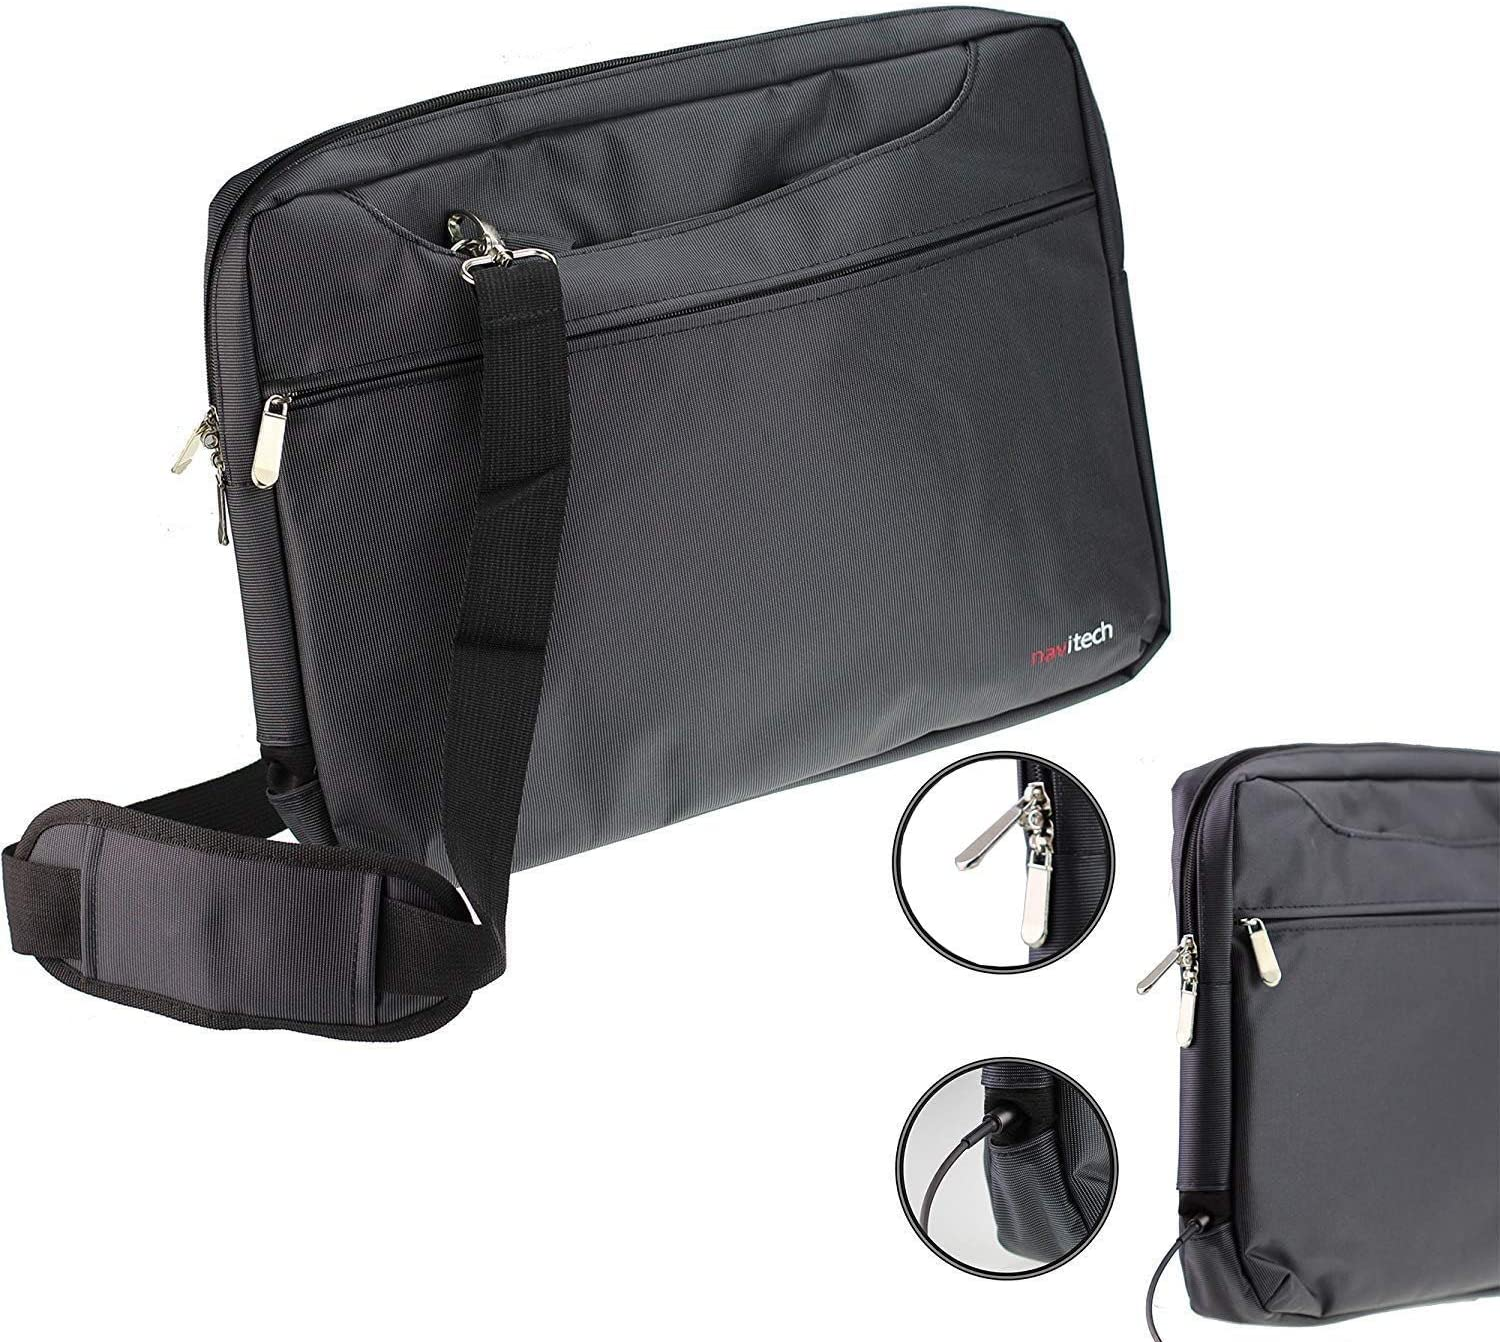 Navitech Black Graphics Tablet Case Max 58% OFF Ugee The Bag Max 59% OFF Compatible with